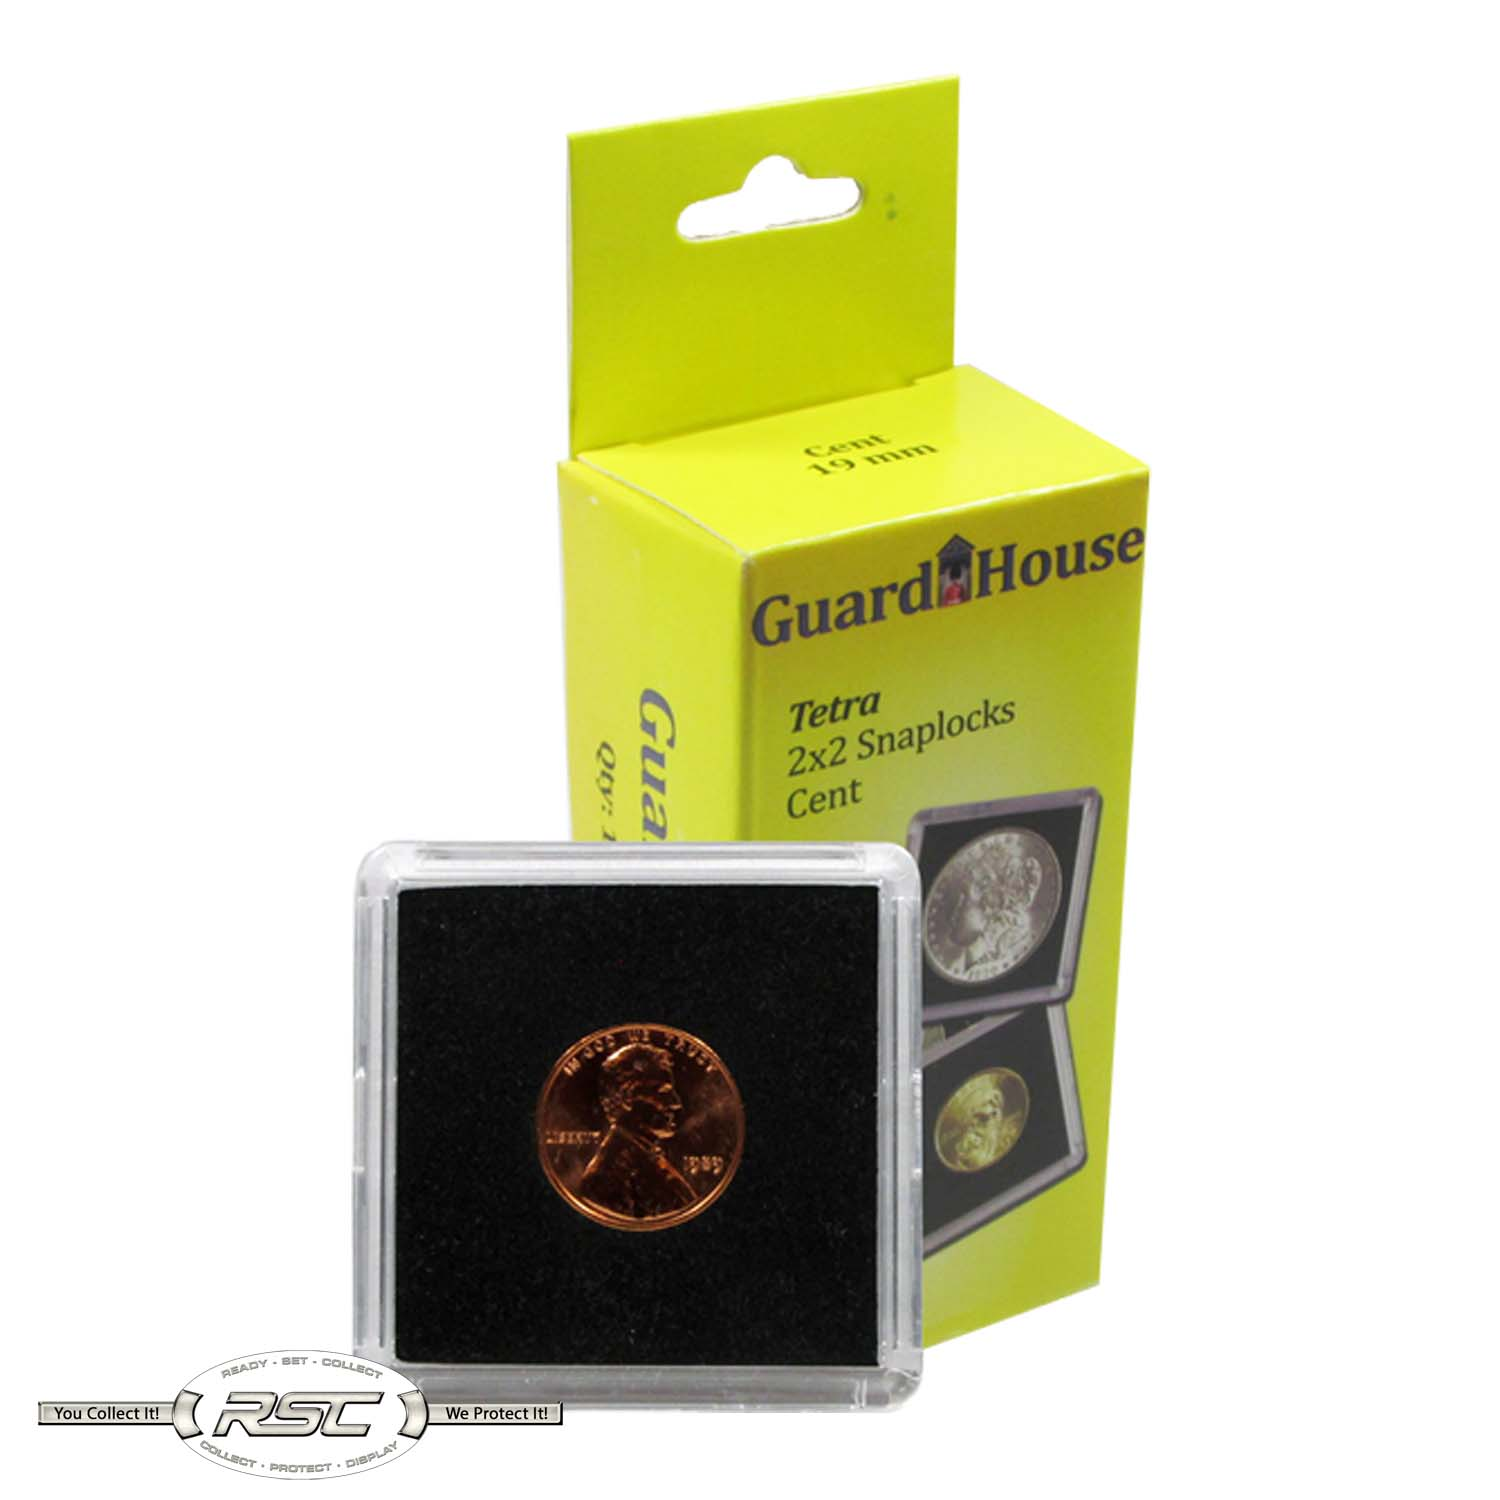 Guardhouse 2x2 Tetra Snaplocks Coin Holders for 1-Oz Copper /& Silver Rounds 10